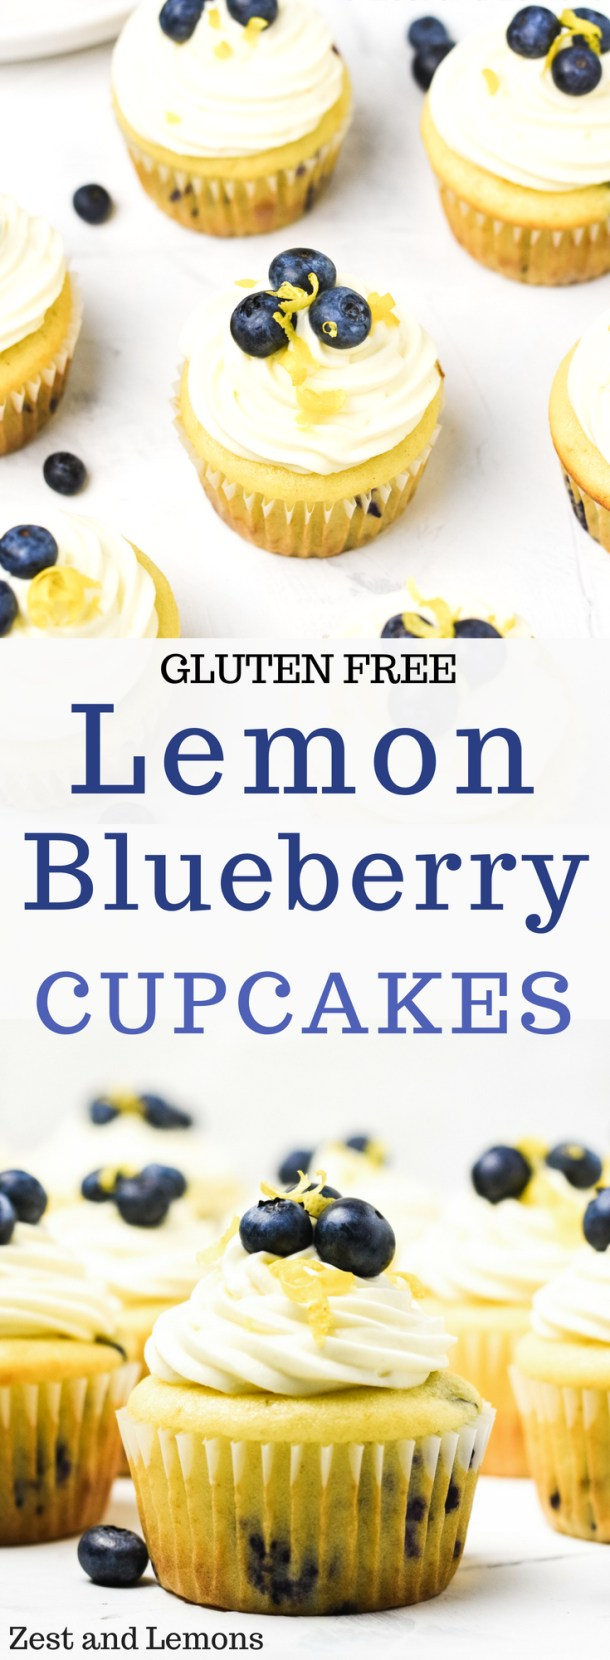 Gluten free lemon blueberry cupcakes with vanilla whipped cream cheese frosting- Zest and Lemons #glutenfree #cupcakes